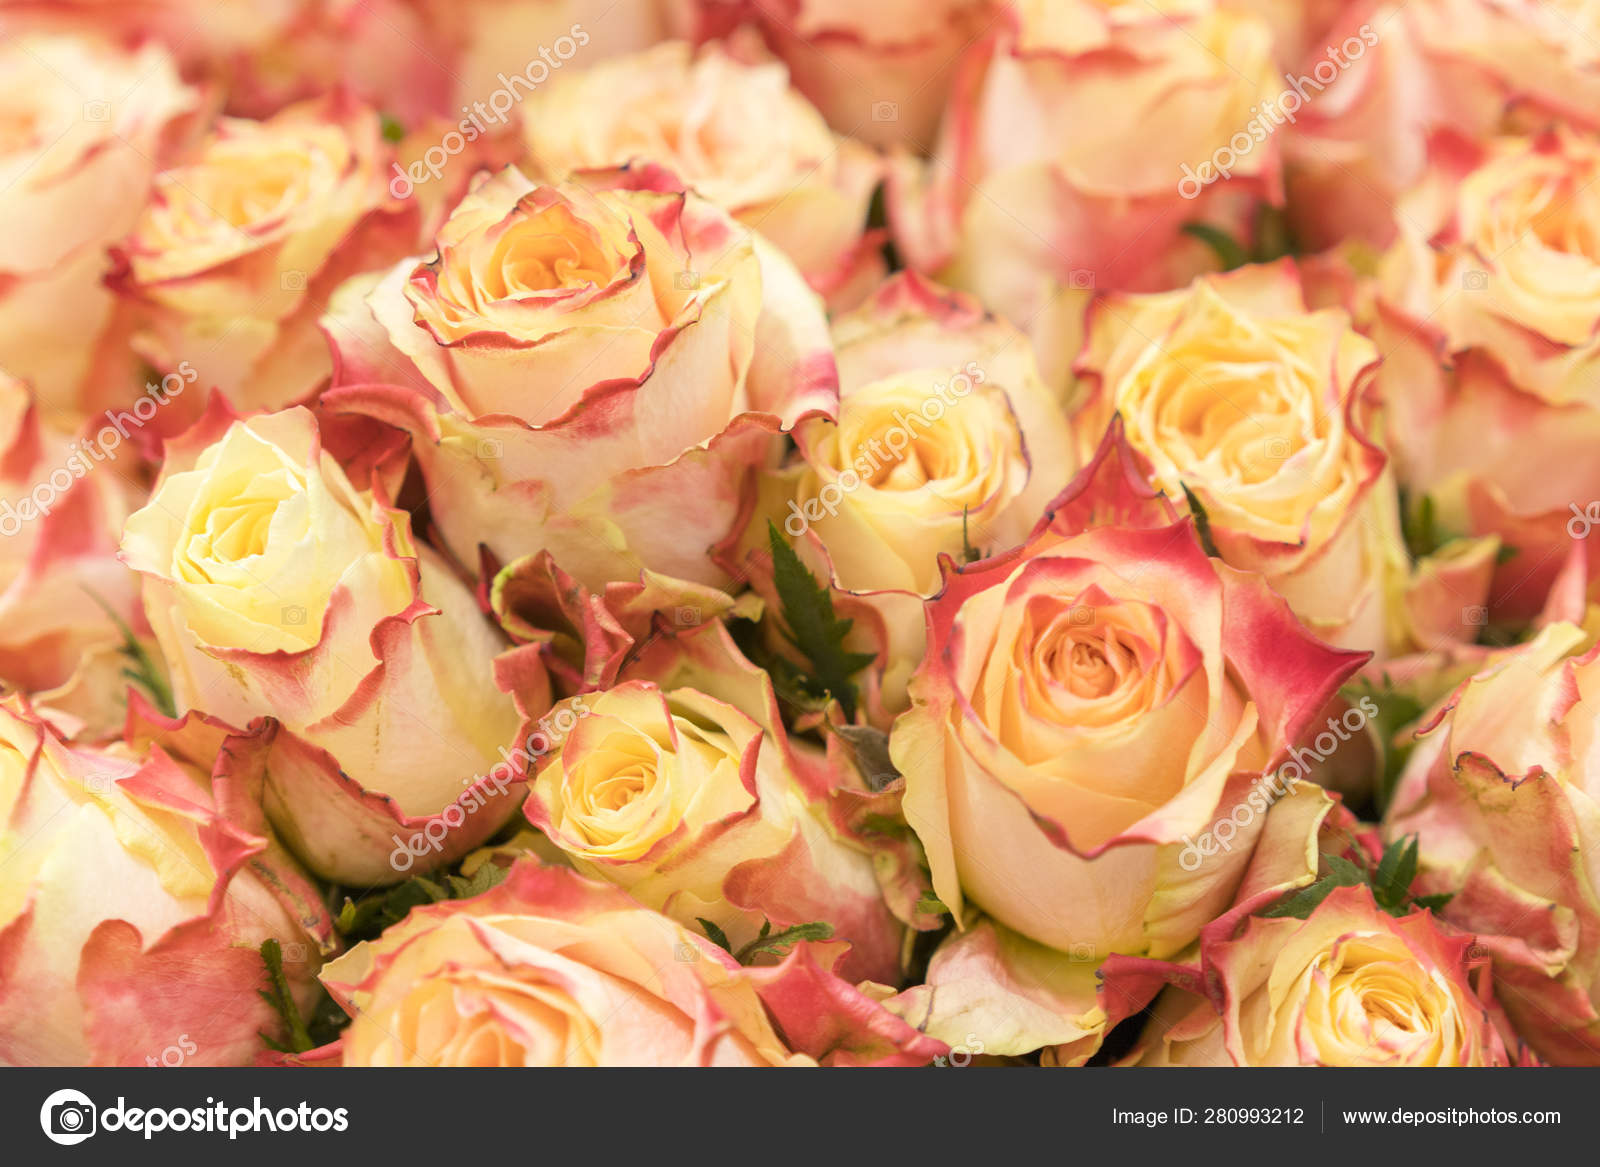 background of pink orange and peach roses natural background of fresh roses soft focus stock photo c colt kiev mail ru 280993212 https depositphotos com 280993212 stock photo background of pink orange and html